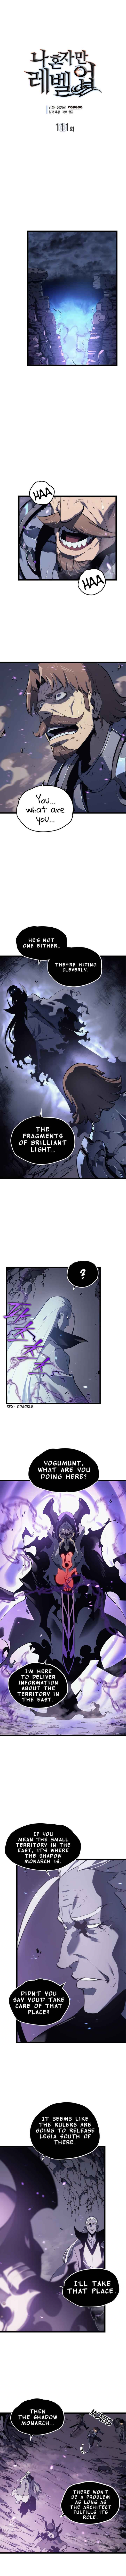 Solo Leveling Chapter 111 Page 2